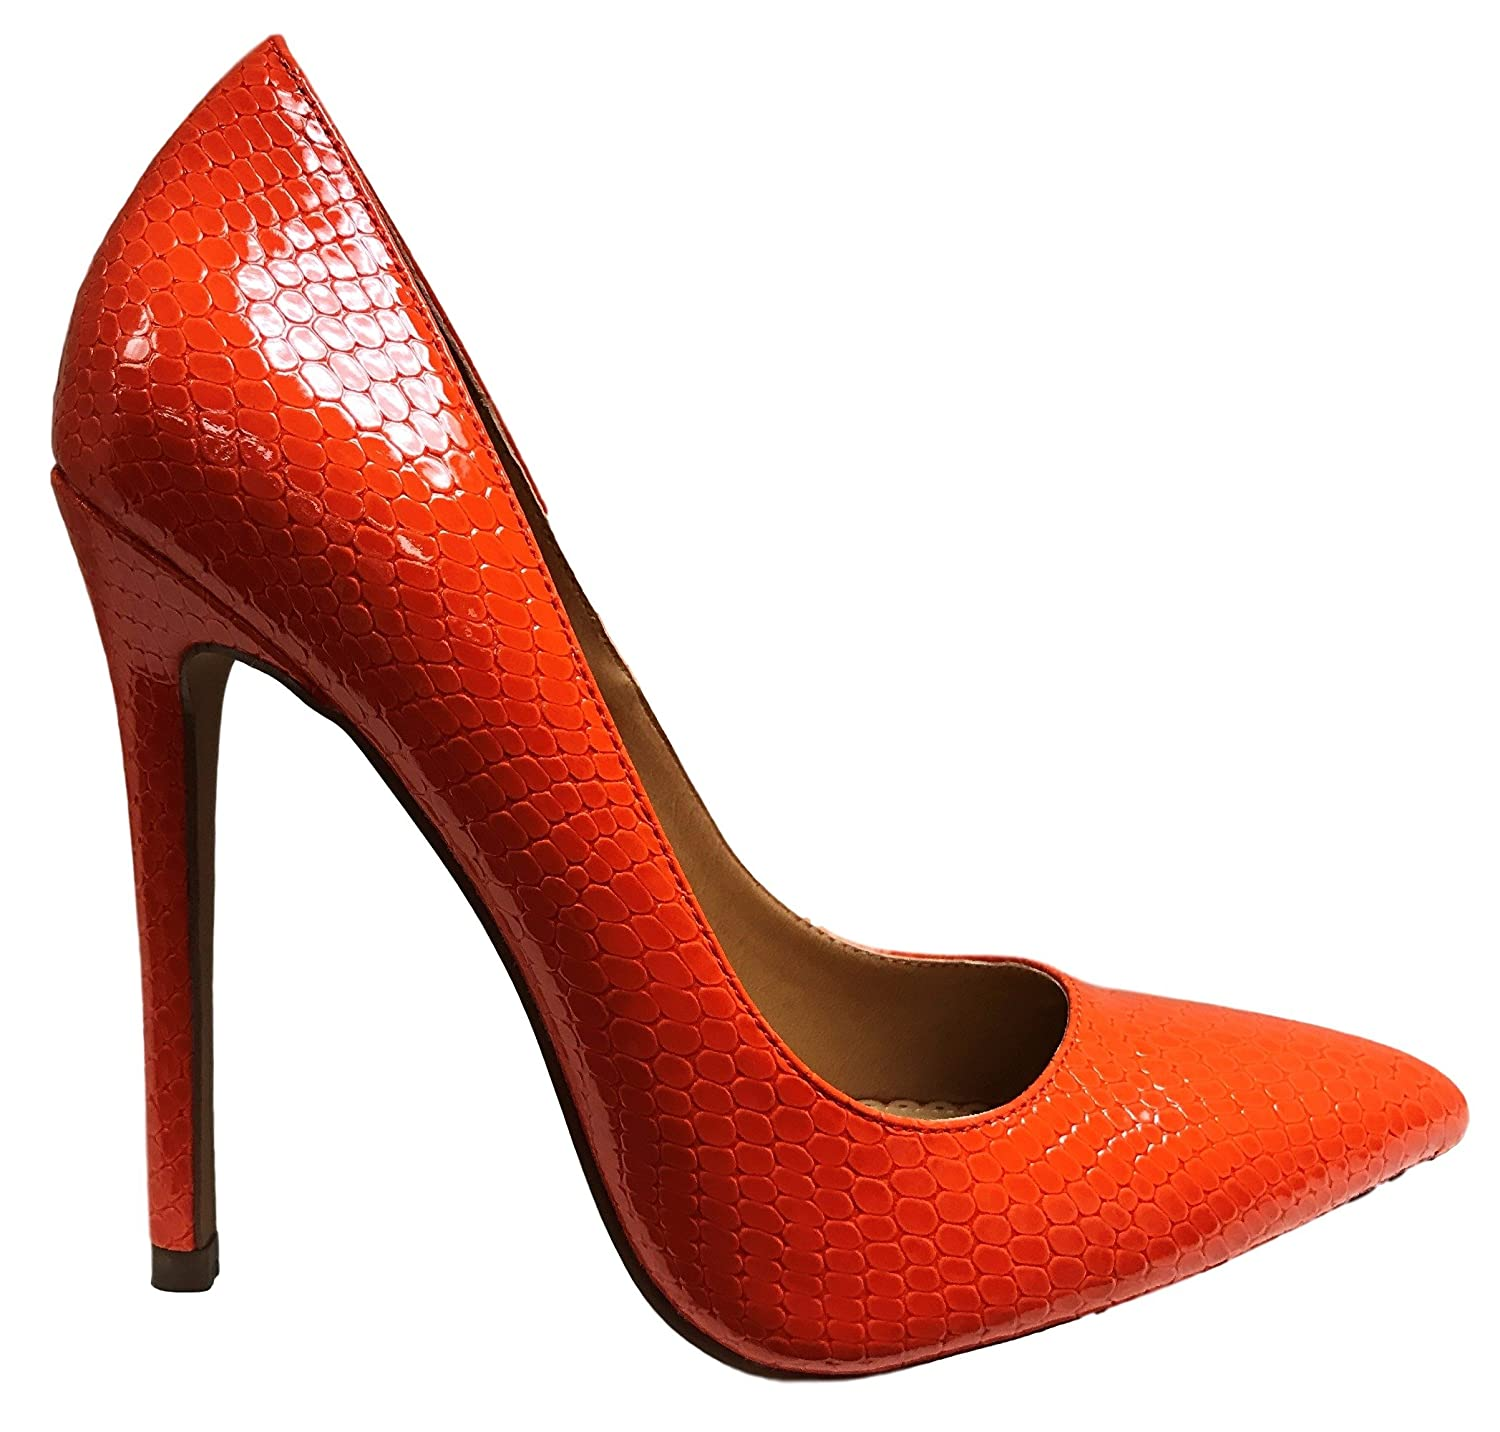 Shoe Republic Nimo Shiny Pointy Toe Stiletto High Heel Slip on Pump Shoes Orange